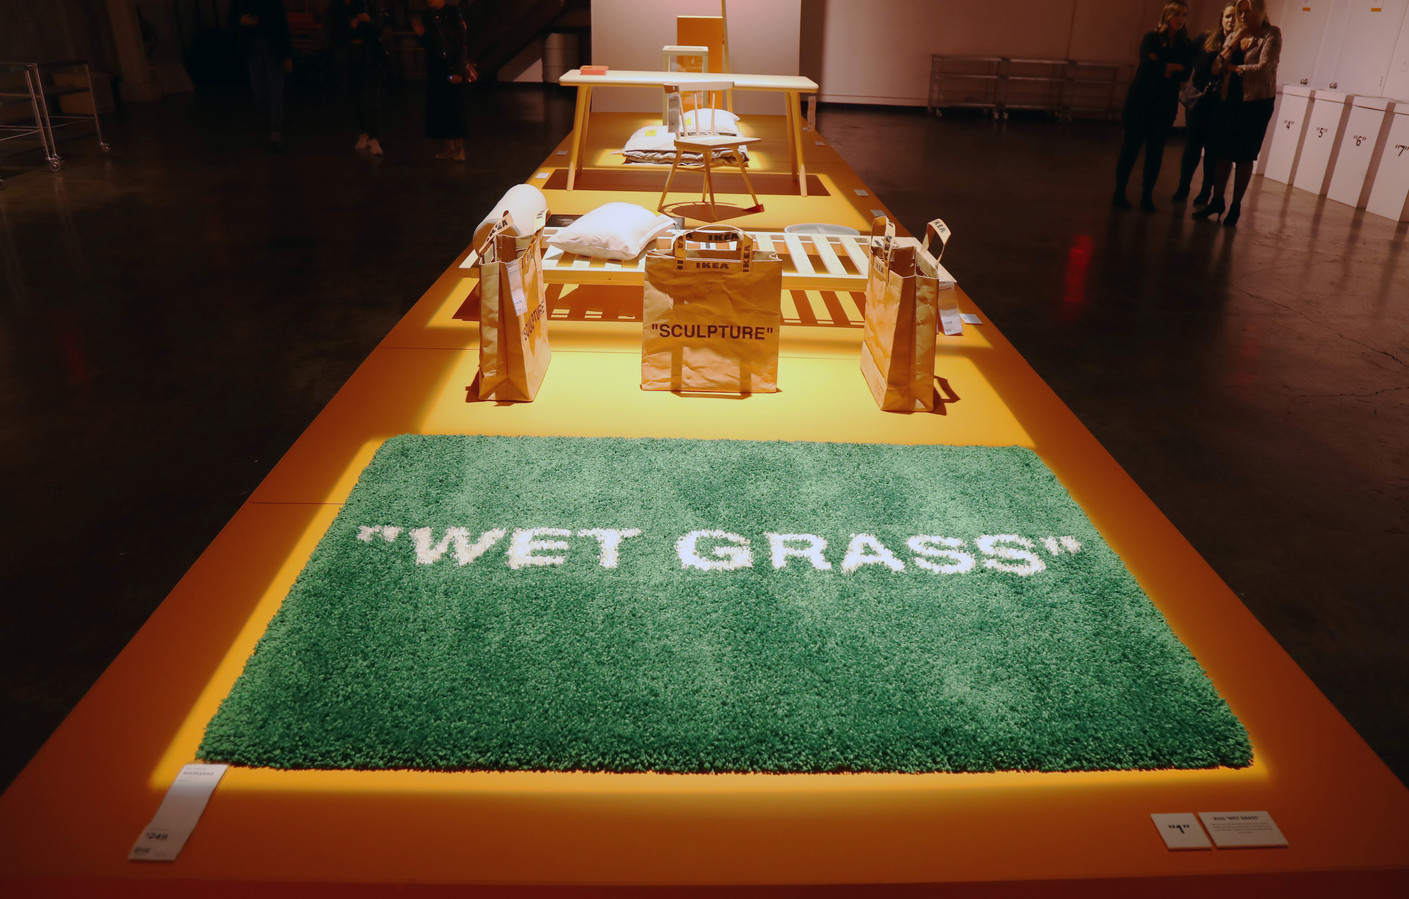 Tapijt 'Wet Grass' van Virgil Abloh